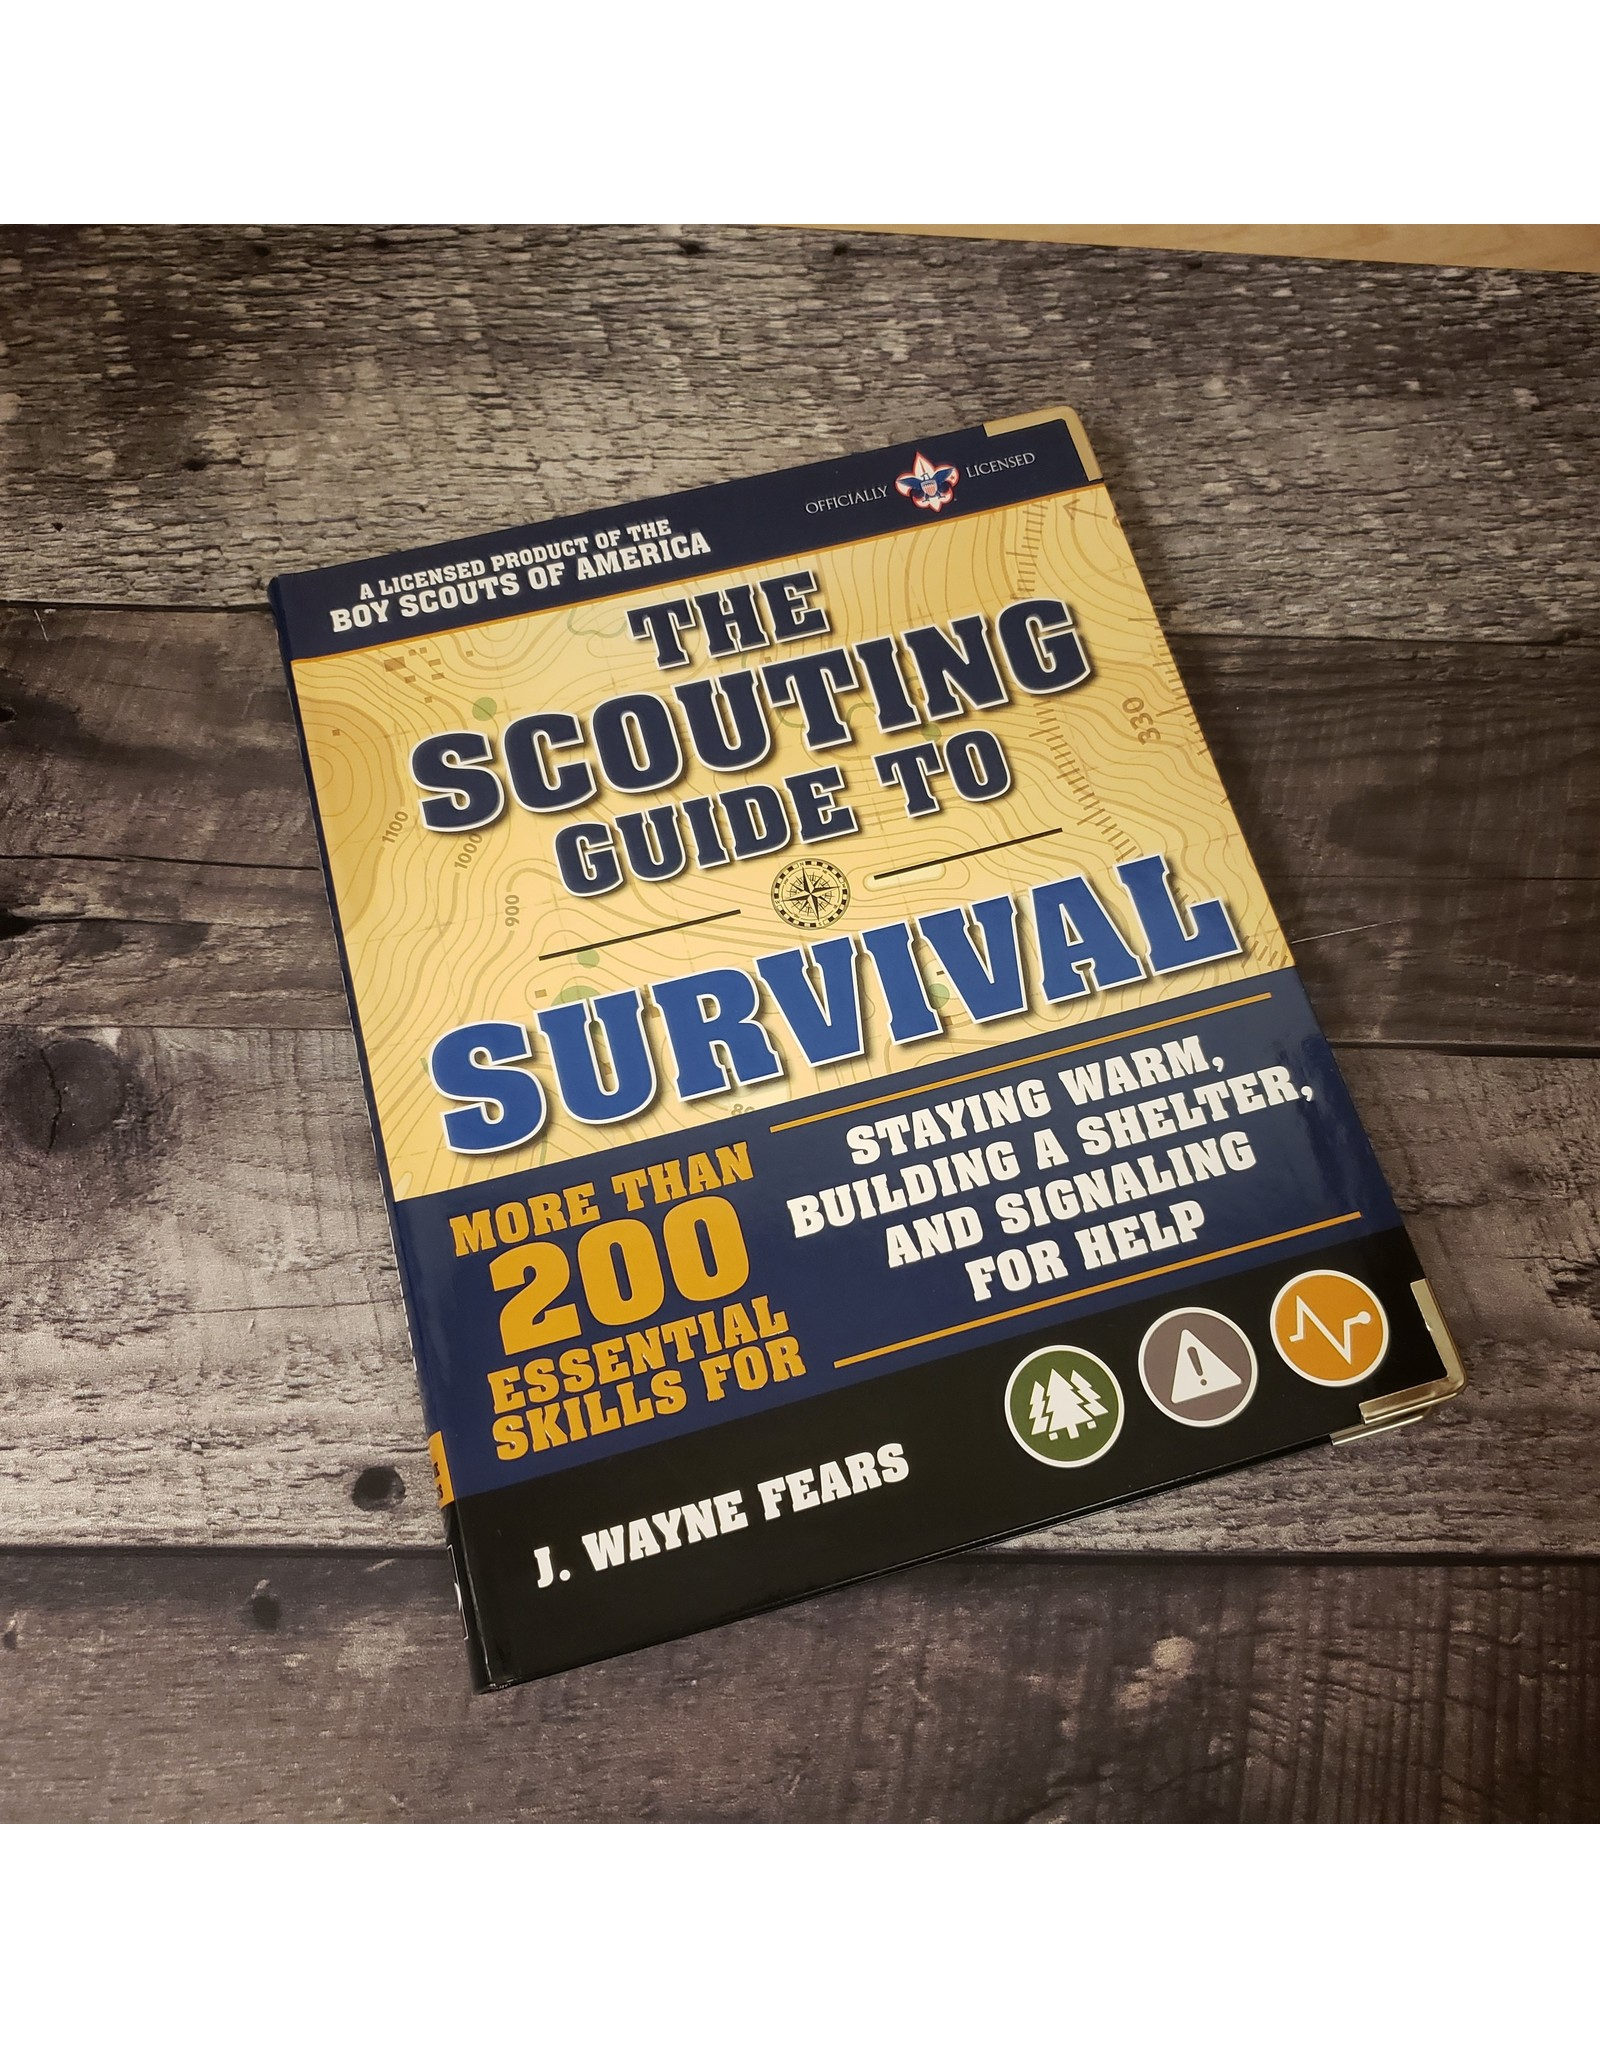 BLUE RIDGE KNIVES SCOUTING GUIDE TO SURVIVAL BOOK